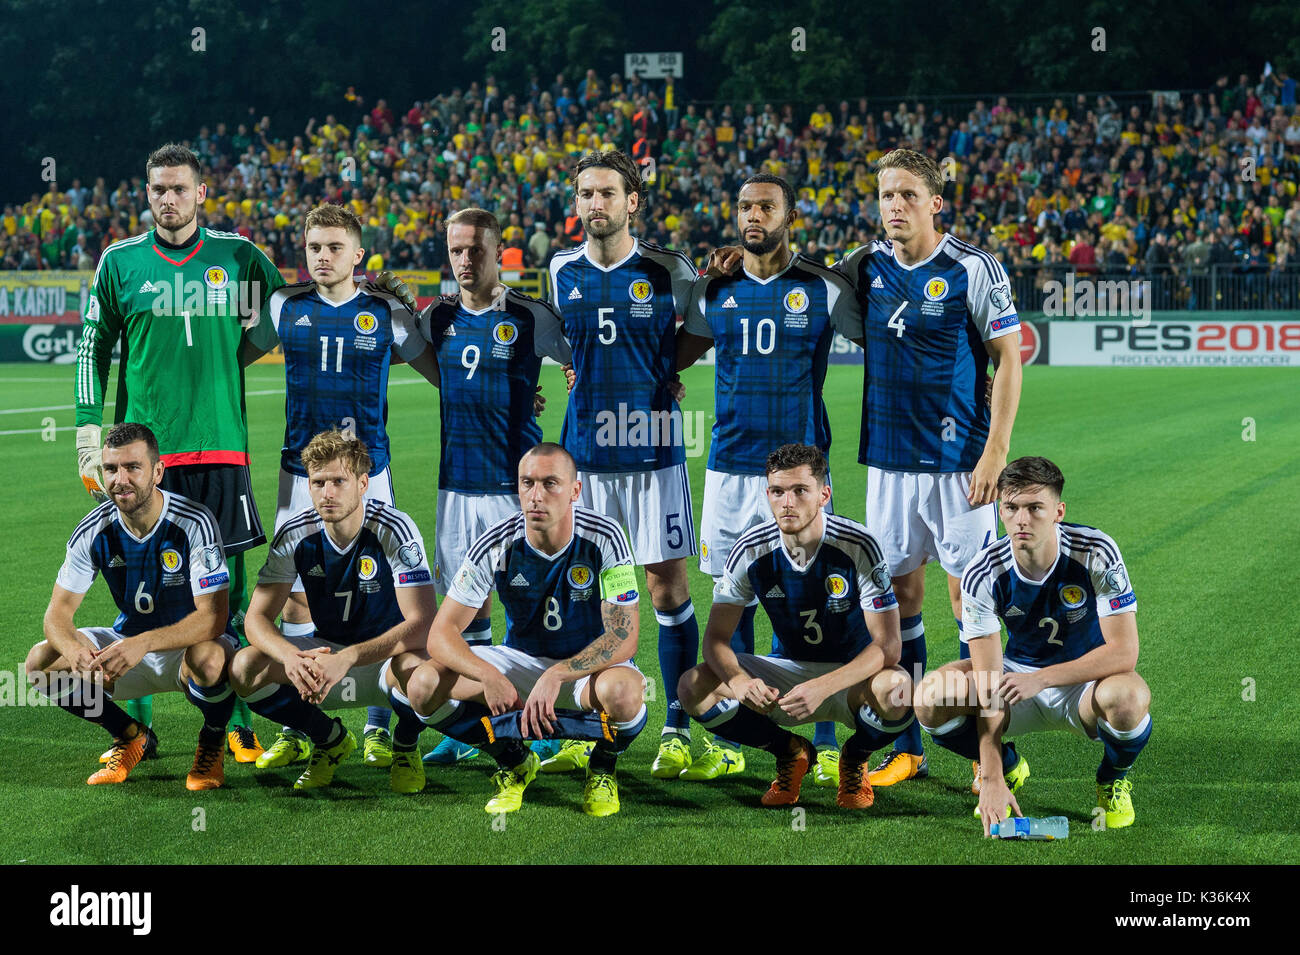 Vilnius, Lithuania. 1st Sep, 2017. Players of Scotland pose for a group photo before the FIFA World Cup European - Stock Image